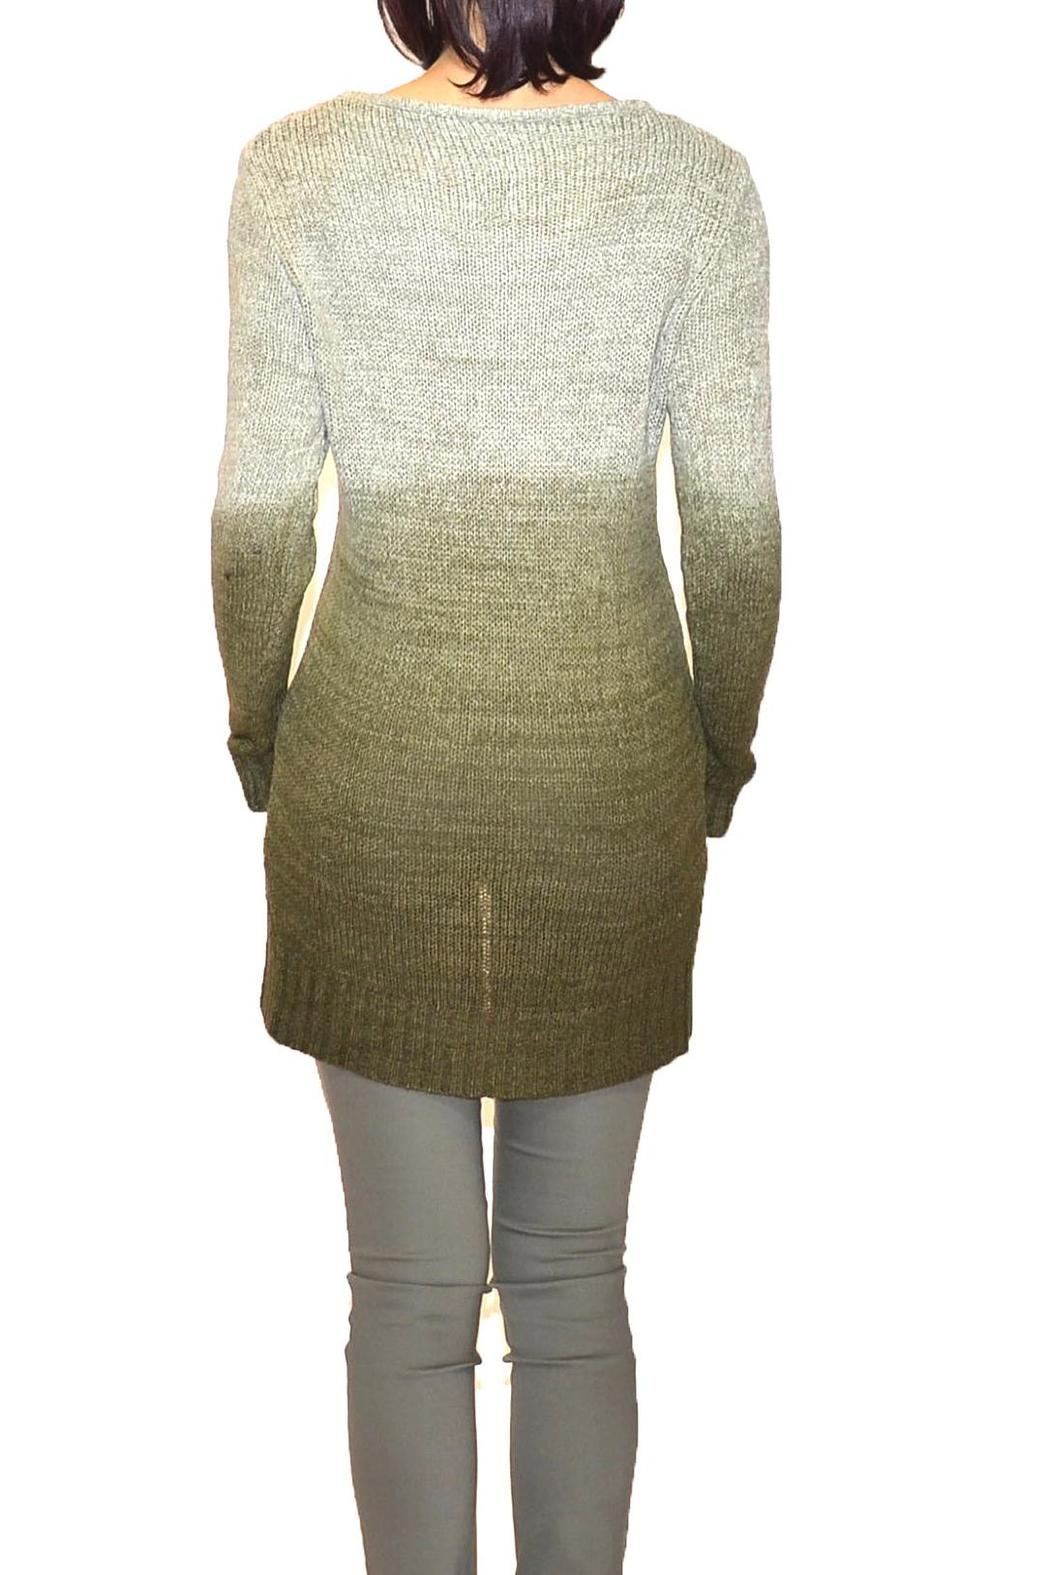 B&K moda Dip-Dyed Olive Sweater - Front Full Image